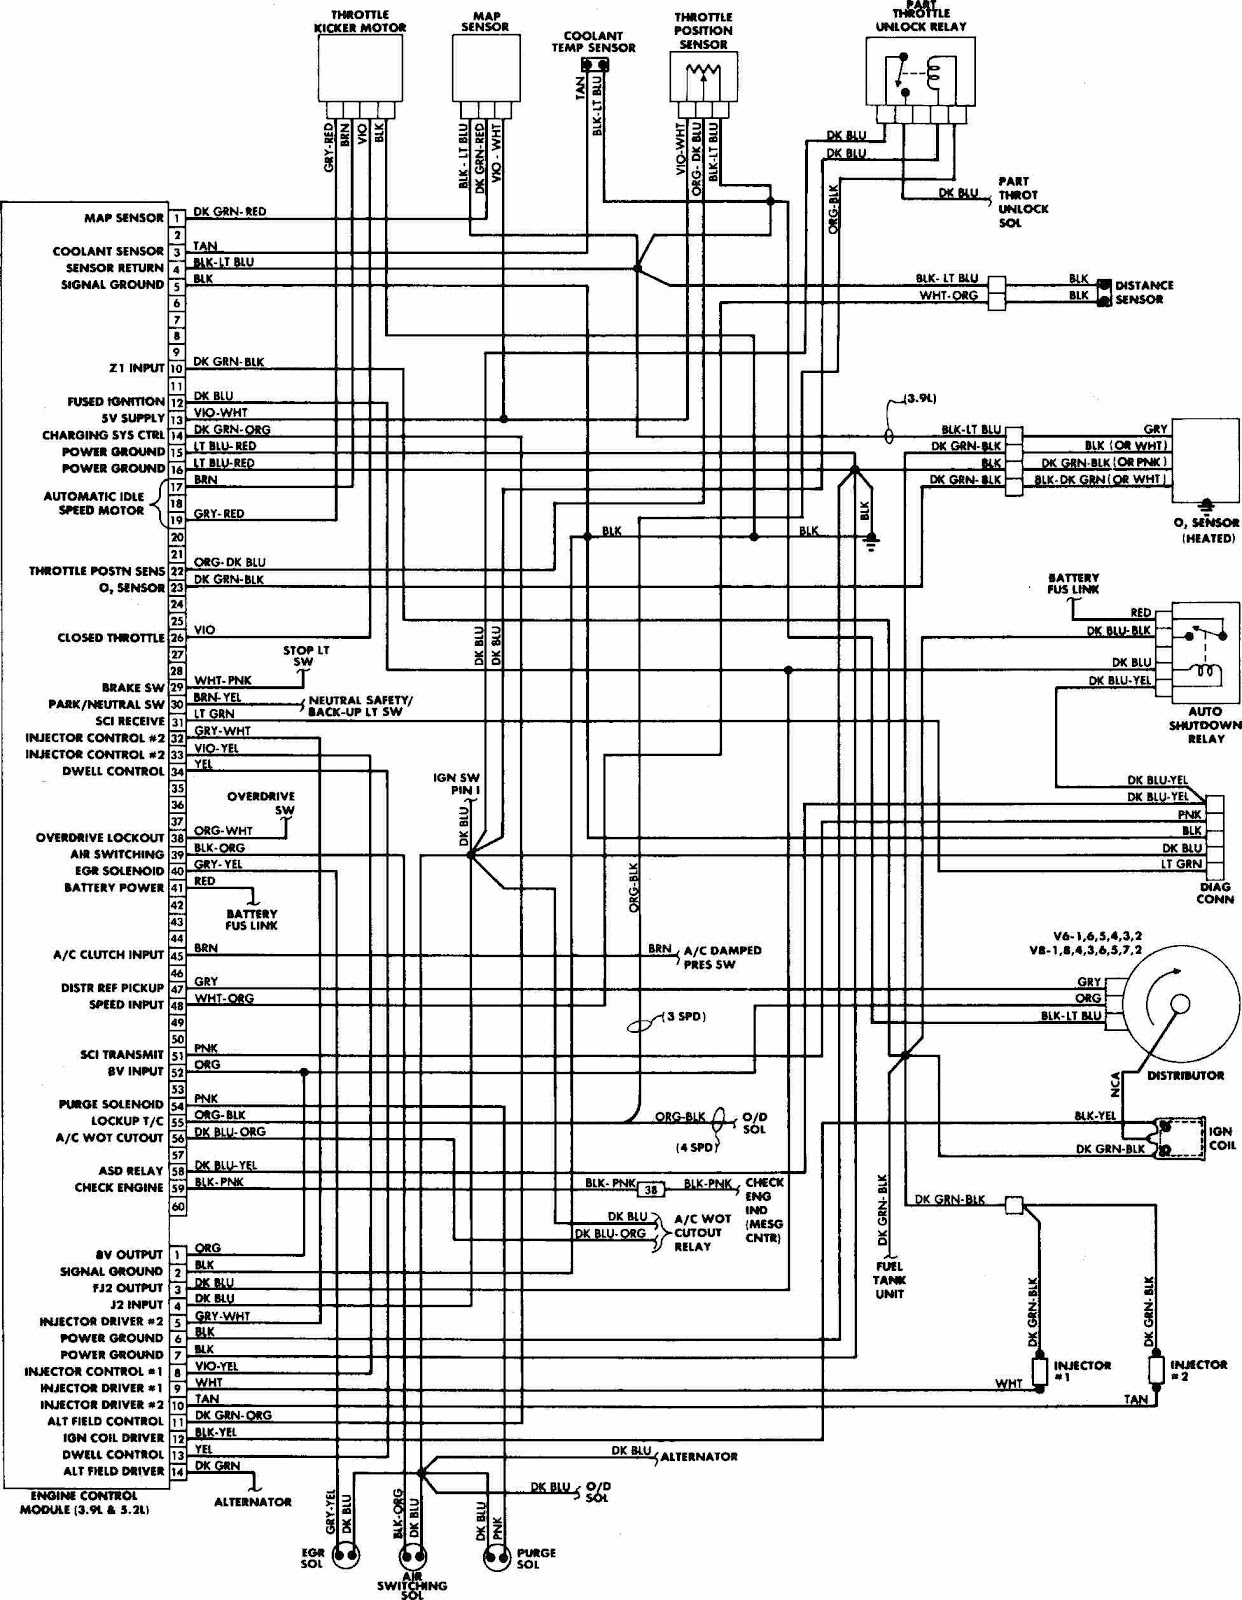 Dodge+W100+1988+Engine+Control+Wiring+Diagram dodge 318 engine wiring diagram wiring diagram simonand 1988 toyota 4runner v6 engine wiring diagram at soozxer.org